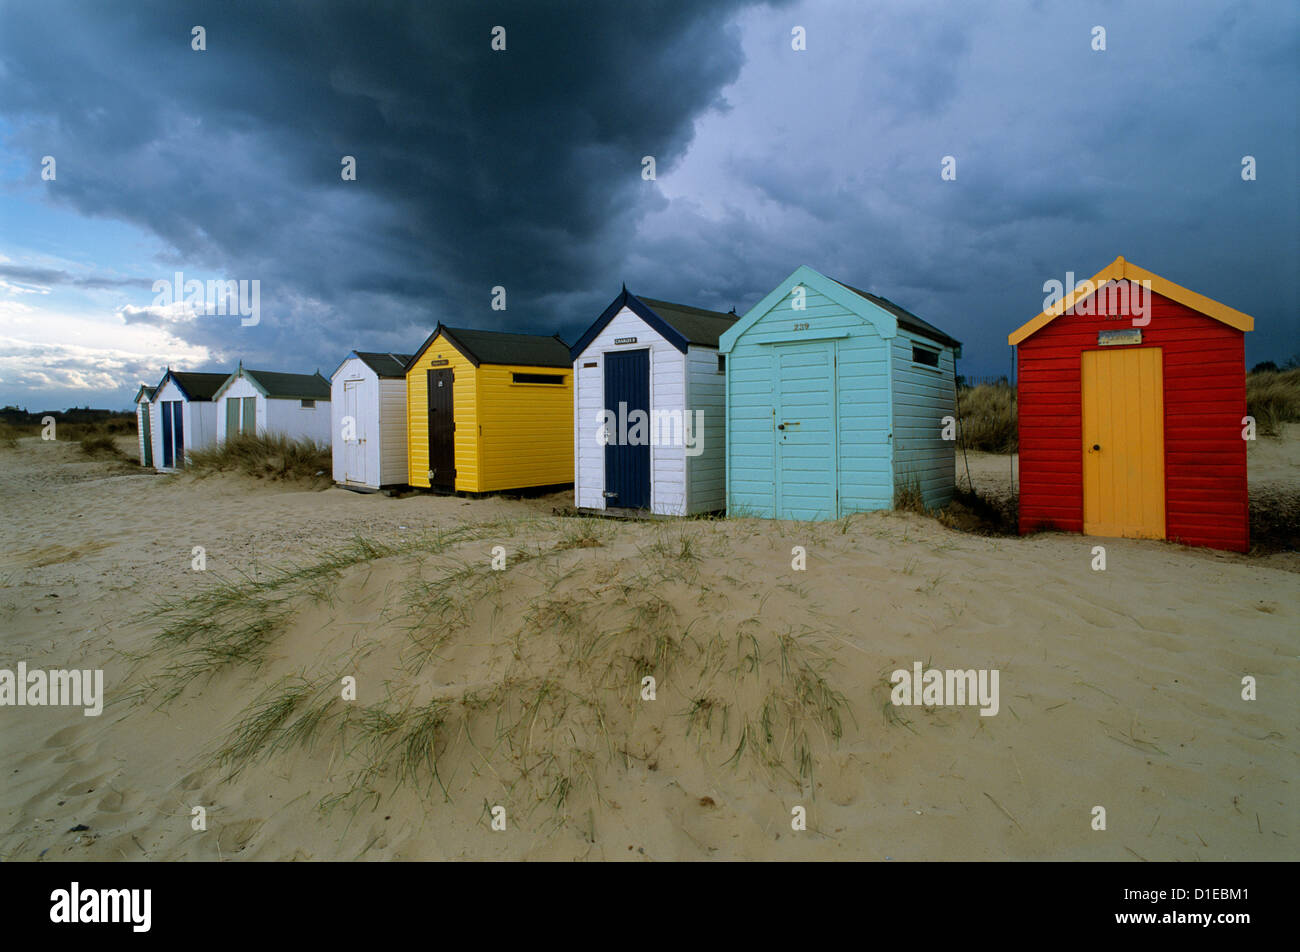 Cabines de plage sous ciel d'orage, Southwold, Suffolk, Angleterre, Royaume-Uni, Europe Photo Stock